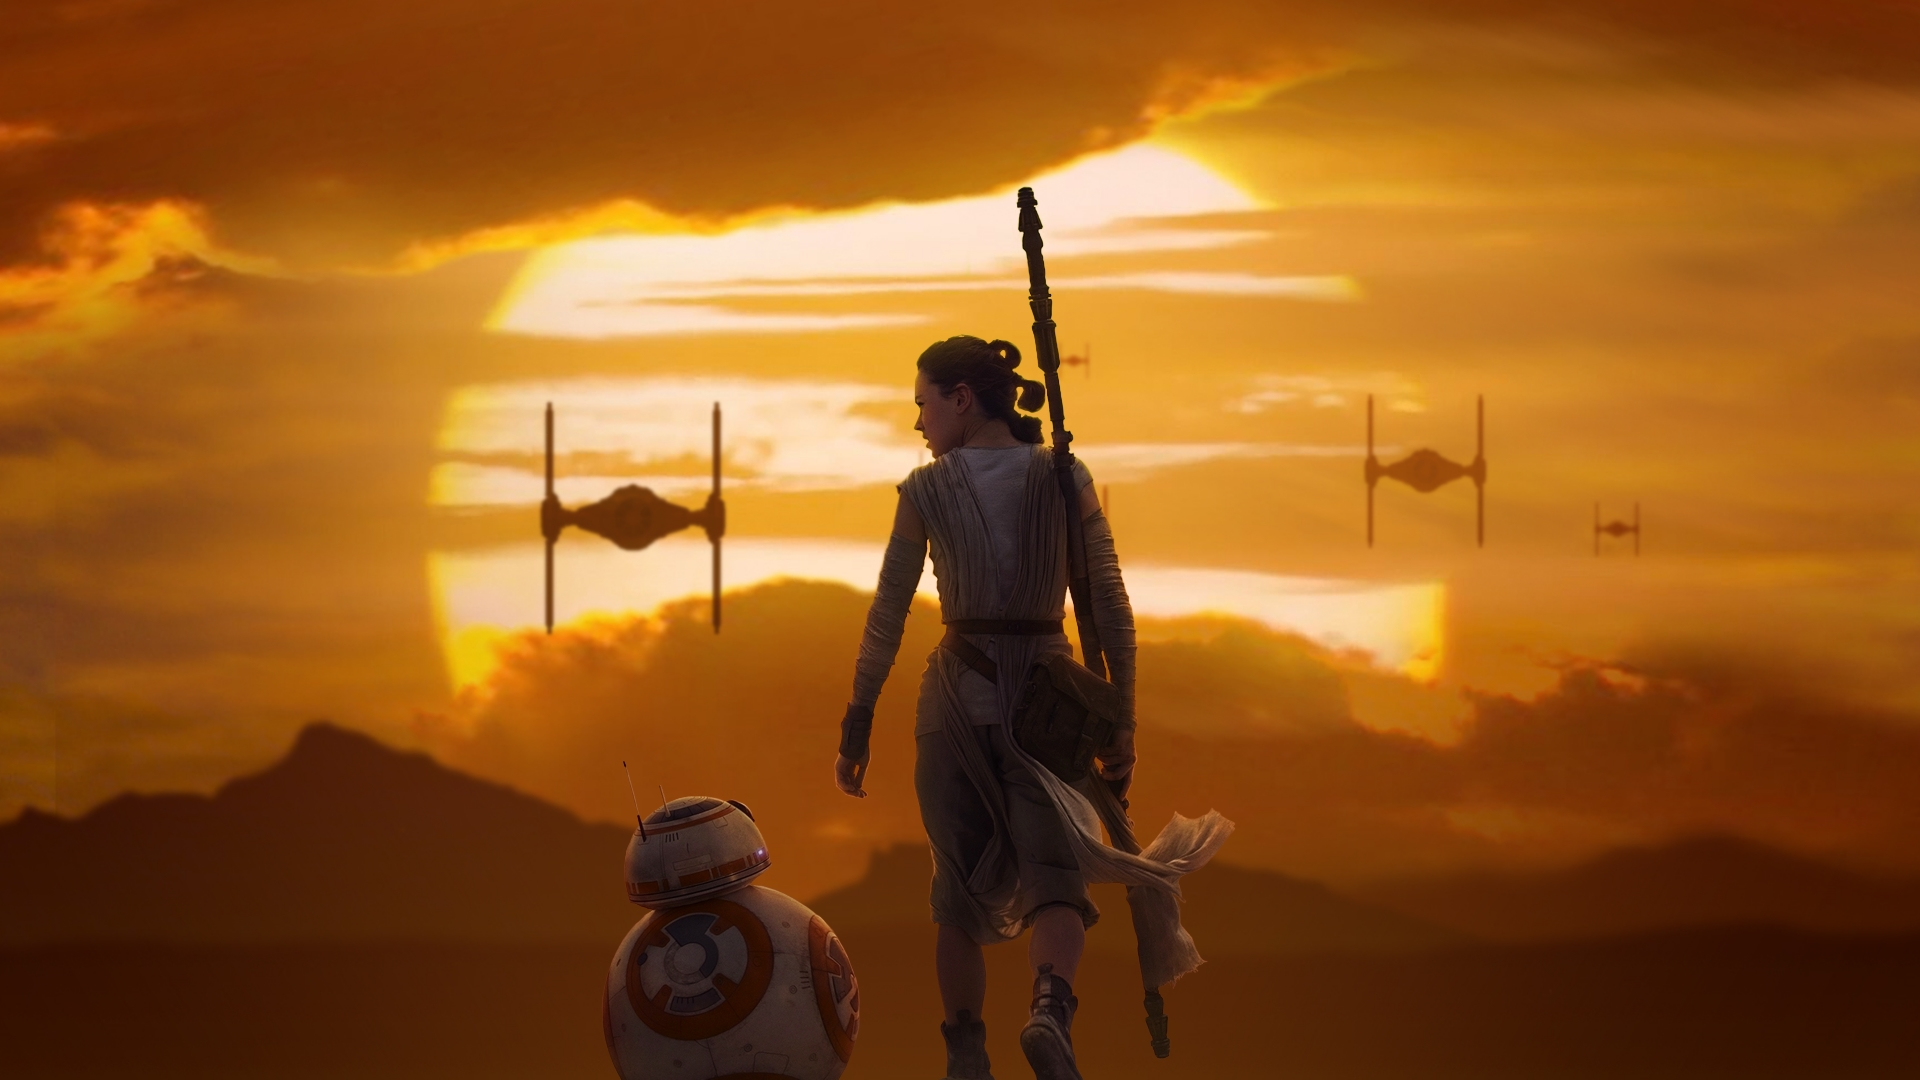 Rey BB 8 Star Wars The Force Awakens 1920x1080